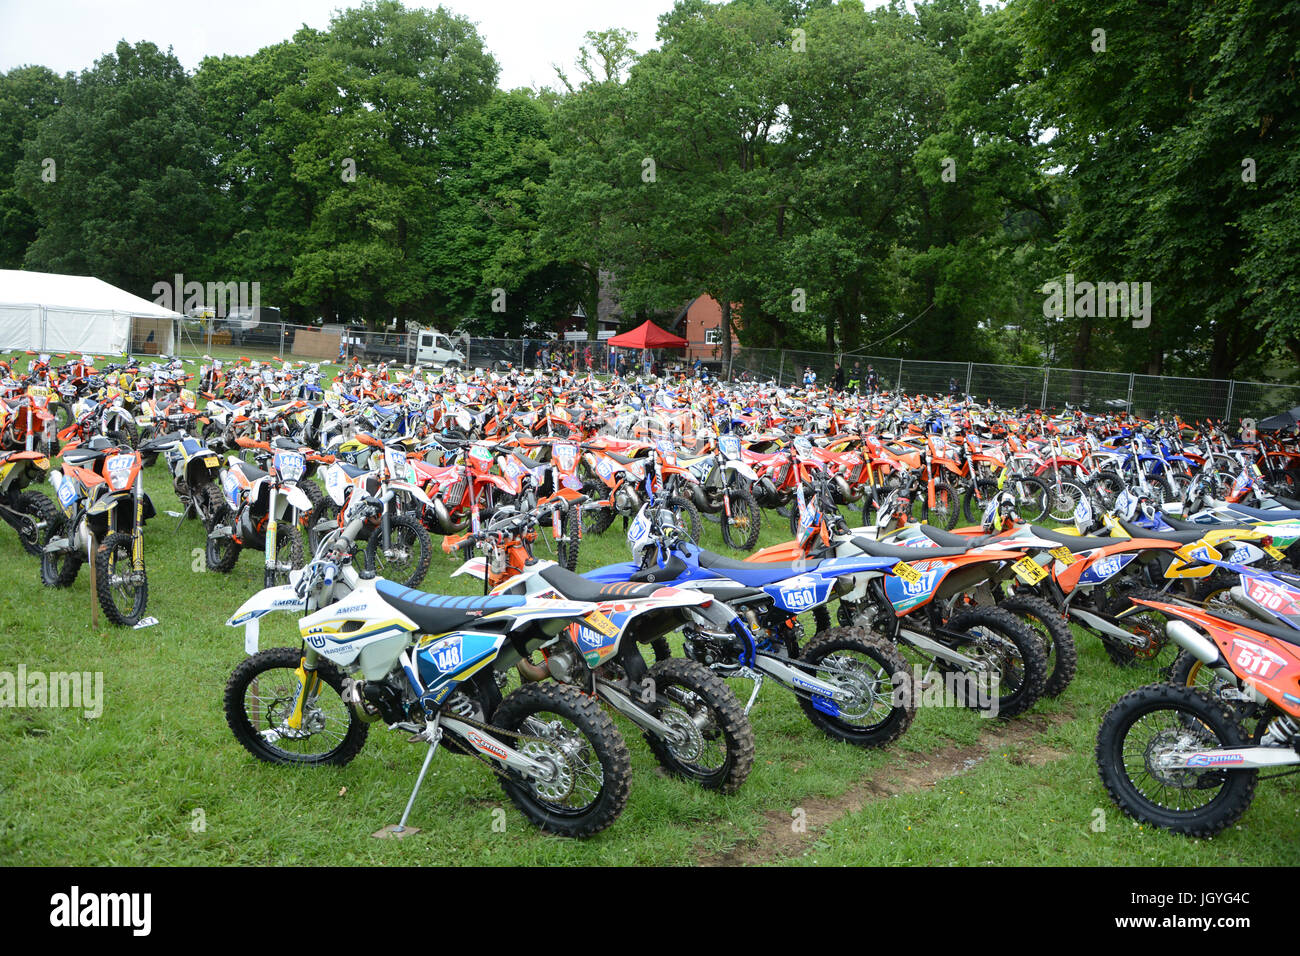 Some of the bikes in Park Ferme at the Welsh 2 Day Enduro race in Llandrindod Wells, Wales - Stock Image